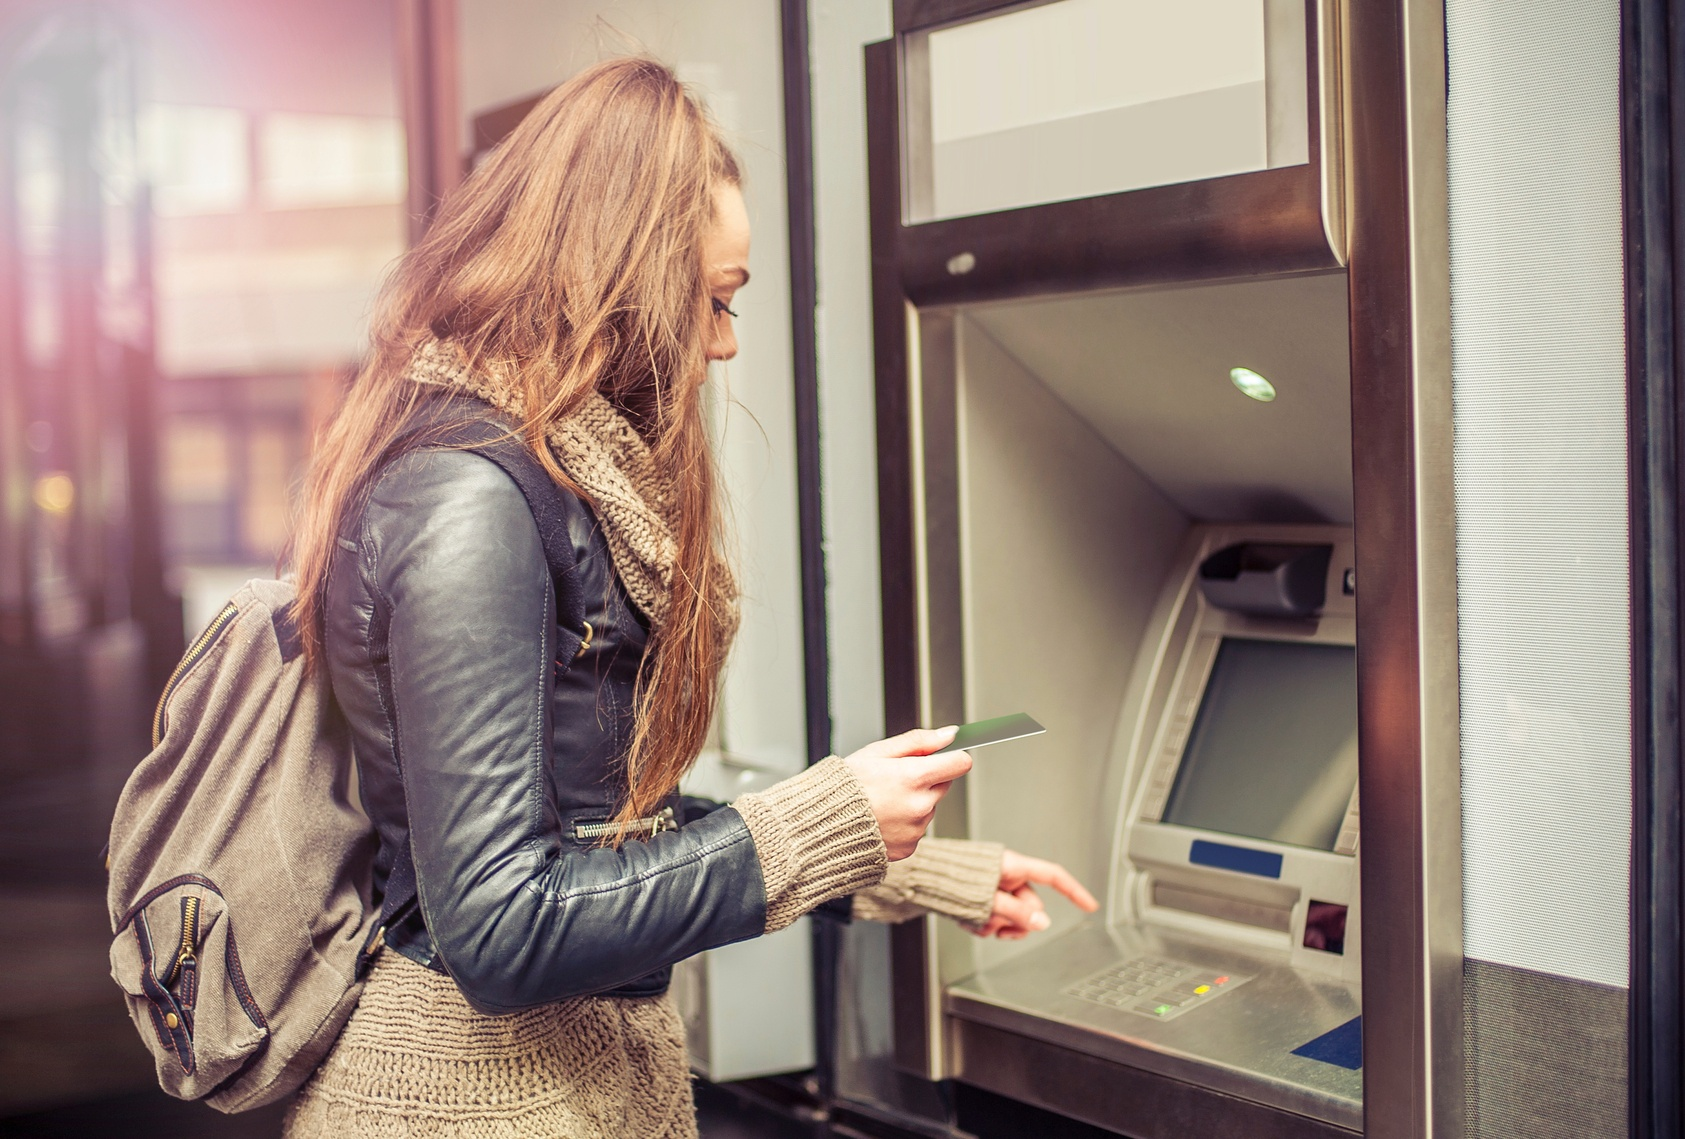 Young-woman-taking-money-from-ATM-000090495725_Medium.jpg